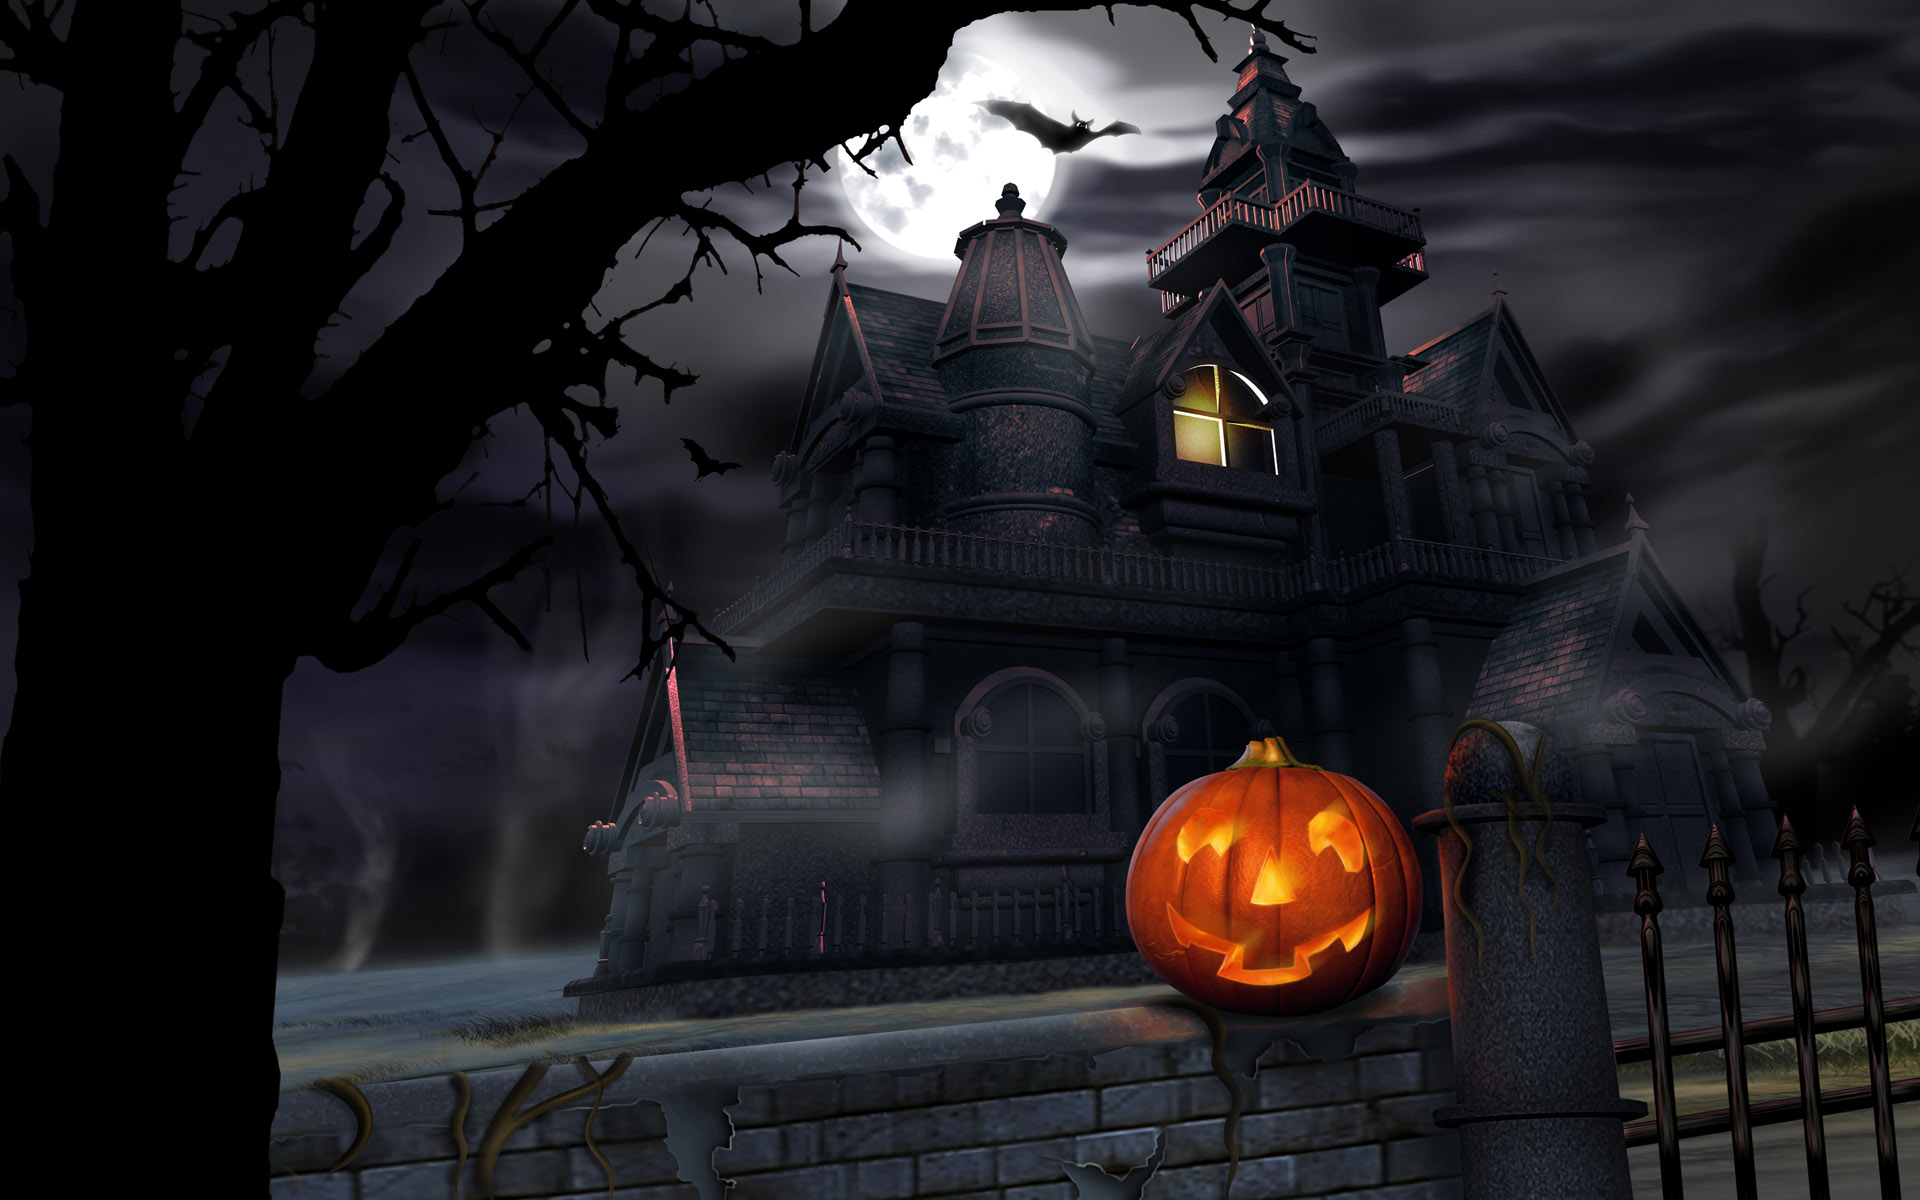 haunted house wallpaper with sound - photo #31